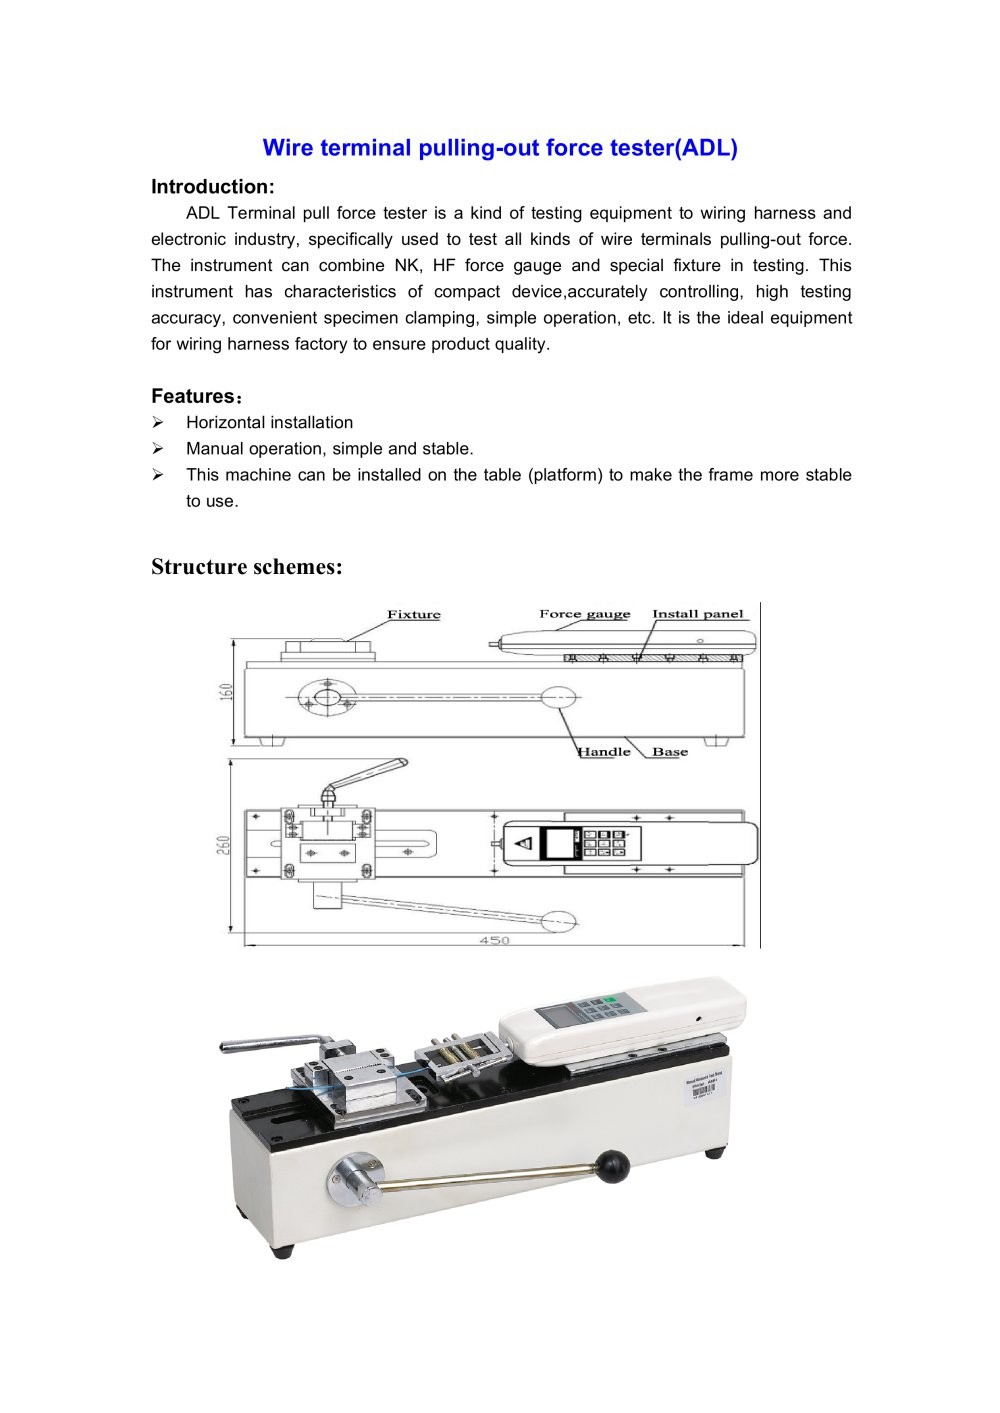 ADL Wire terminal pulling-out force tester for testing equipment to wiring  harness and electronic industry | Wenzhou Tripod instrument - 1 / 1 Pages